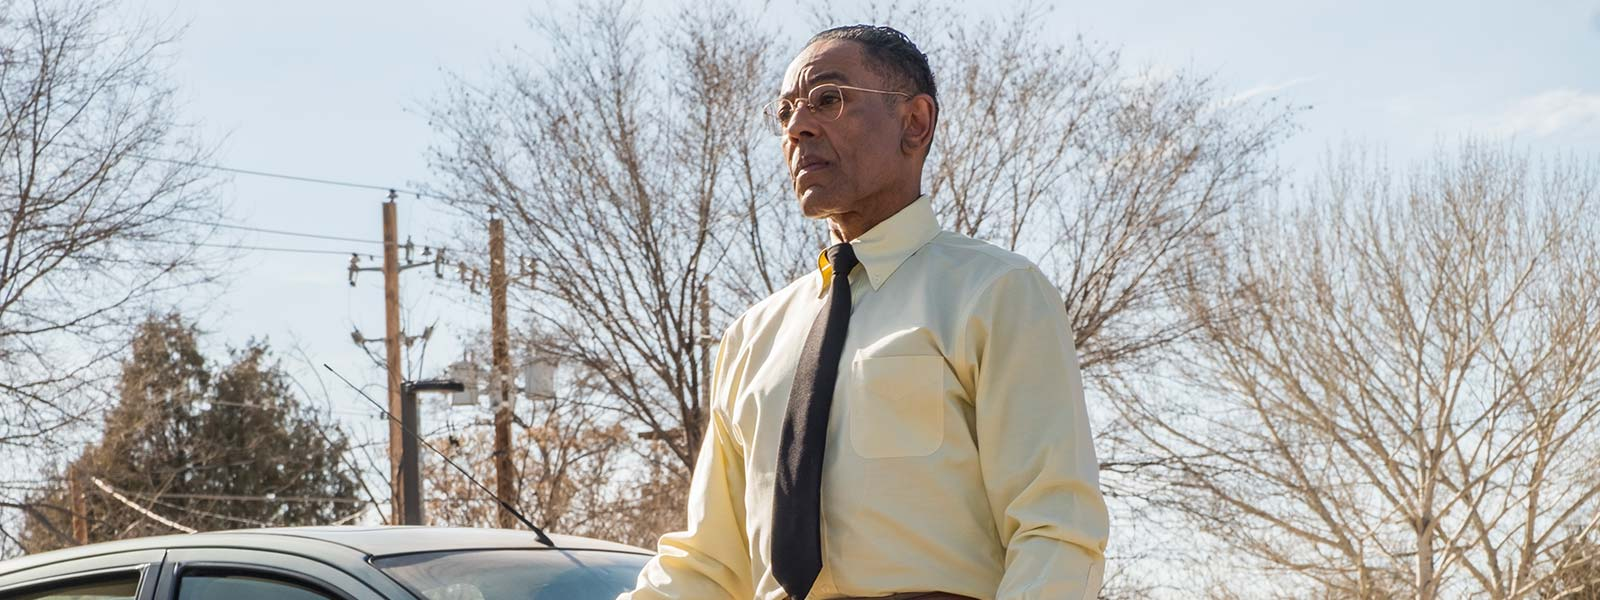 better-call-saul-402-gus-fring-giancarlo-esposito-800×600